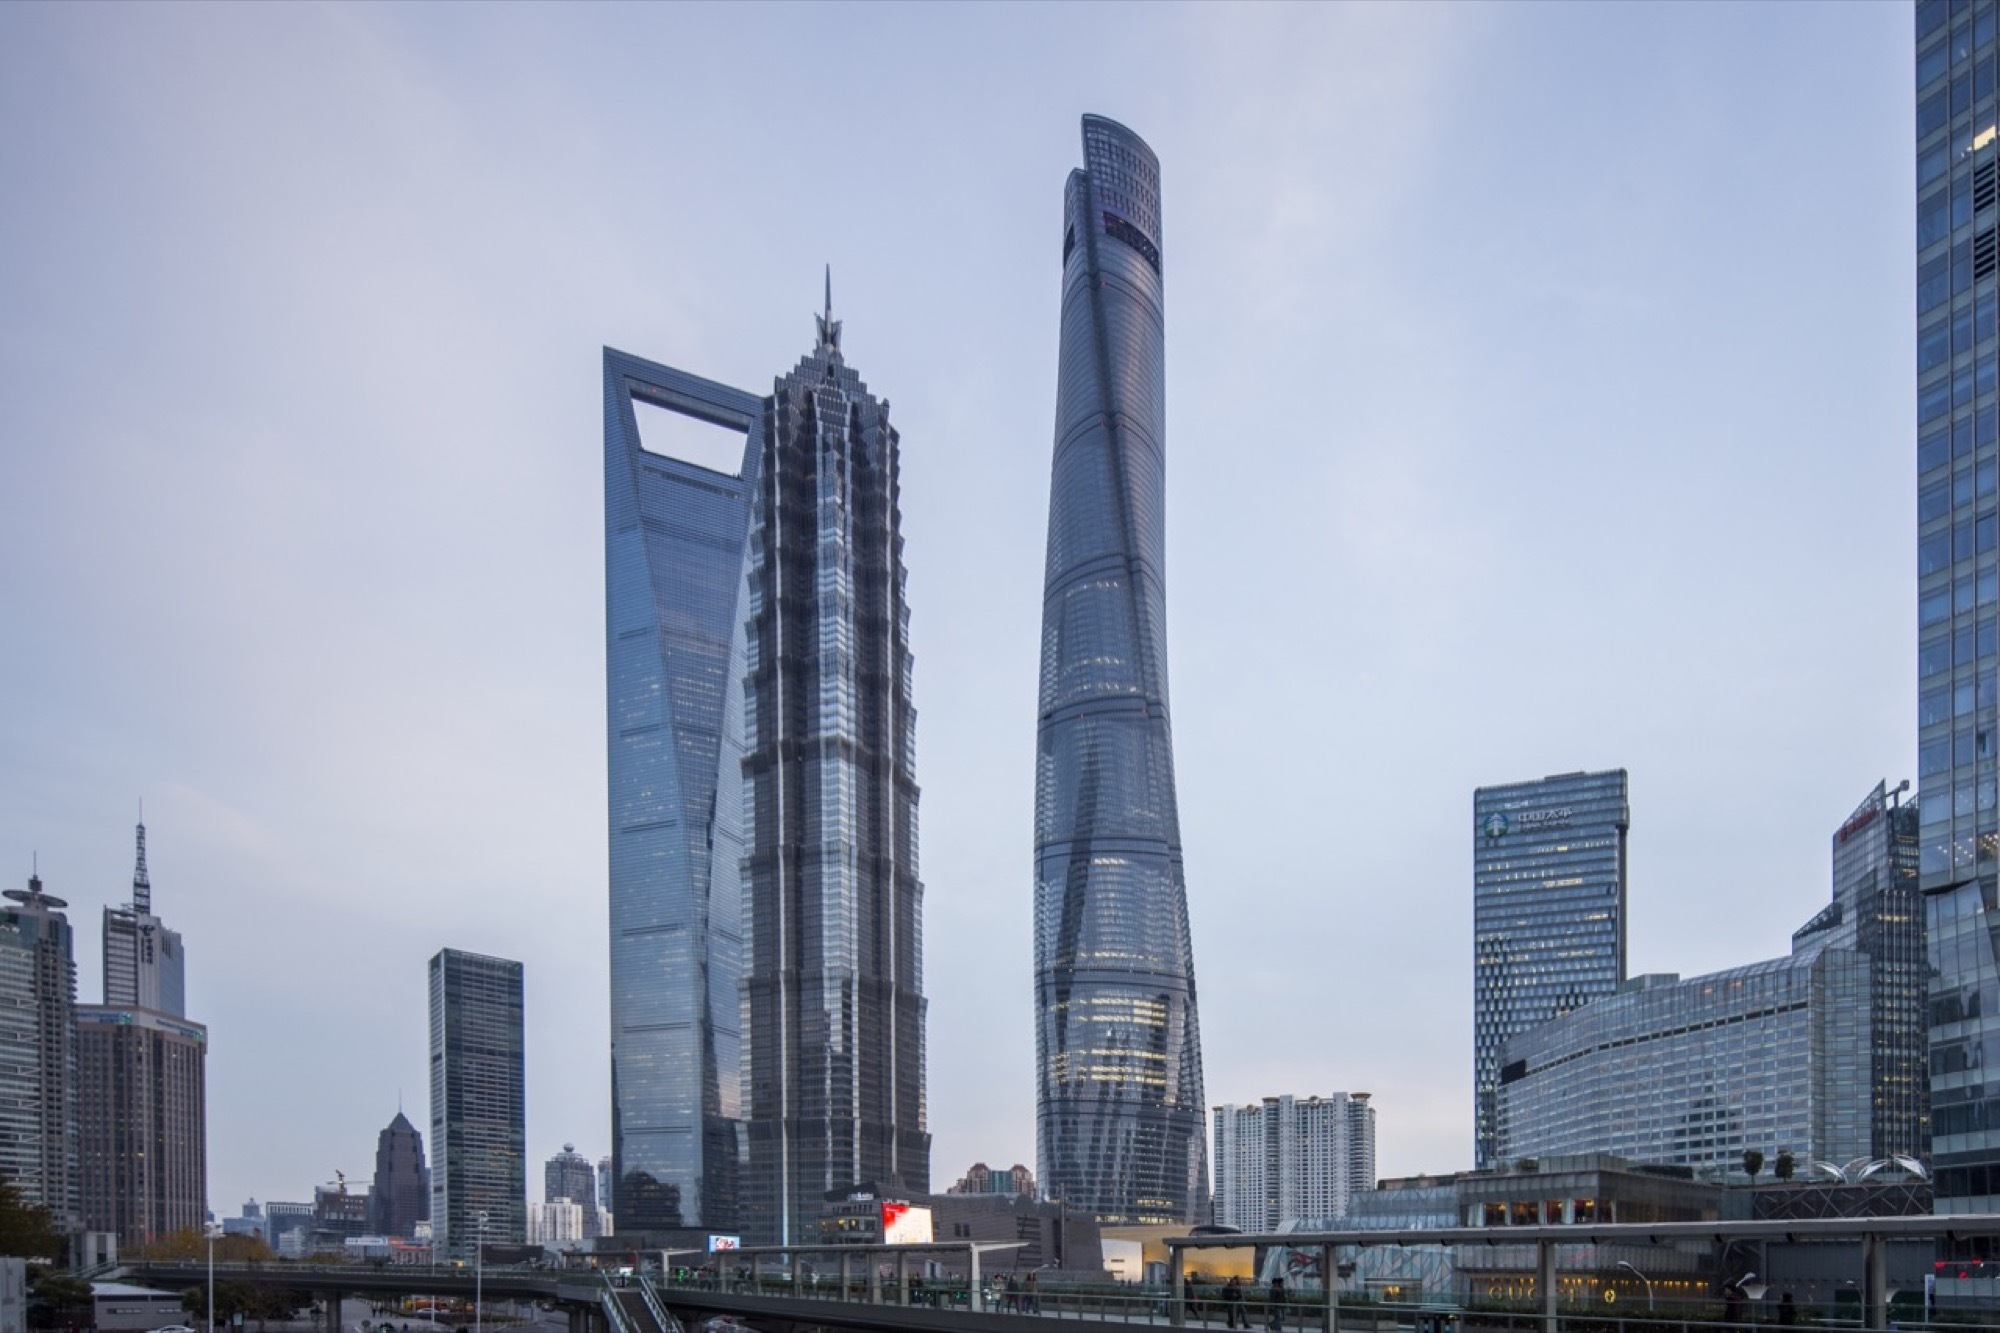 Shanghai Tower Gensler ArchDaily Amazing China Tallest Building Shanghai Tower Gets Final Beam